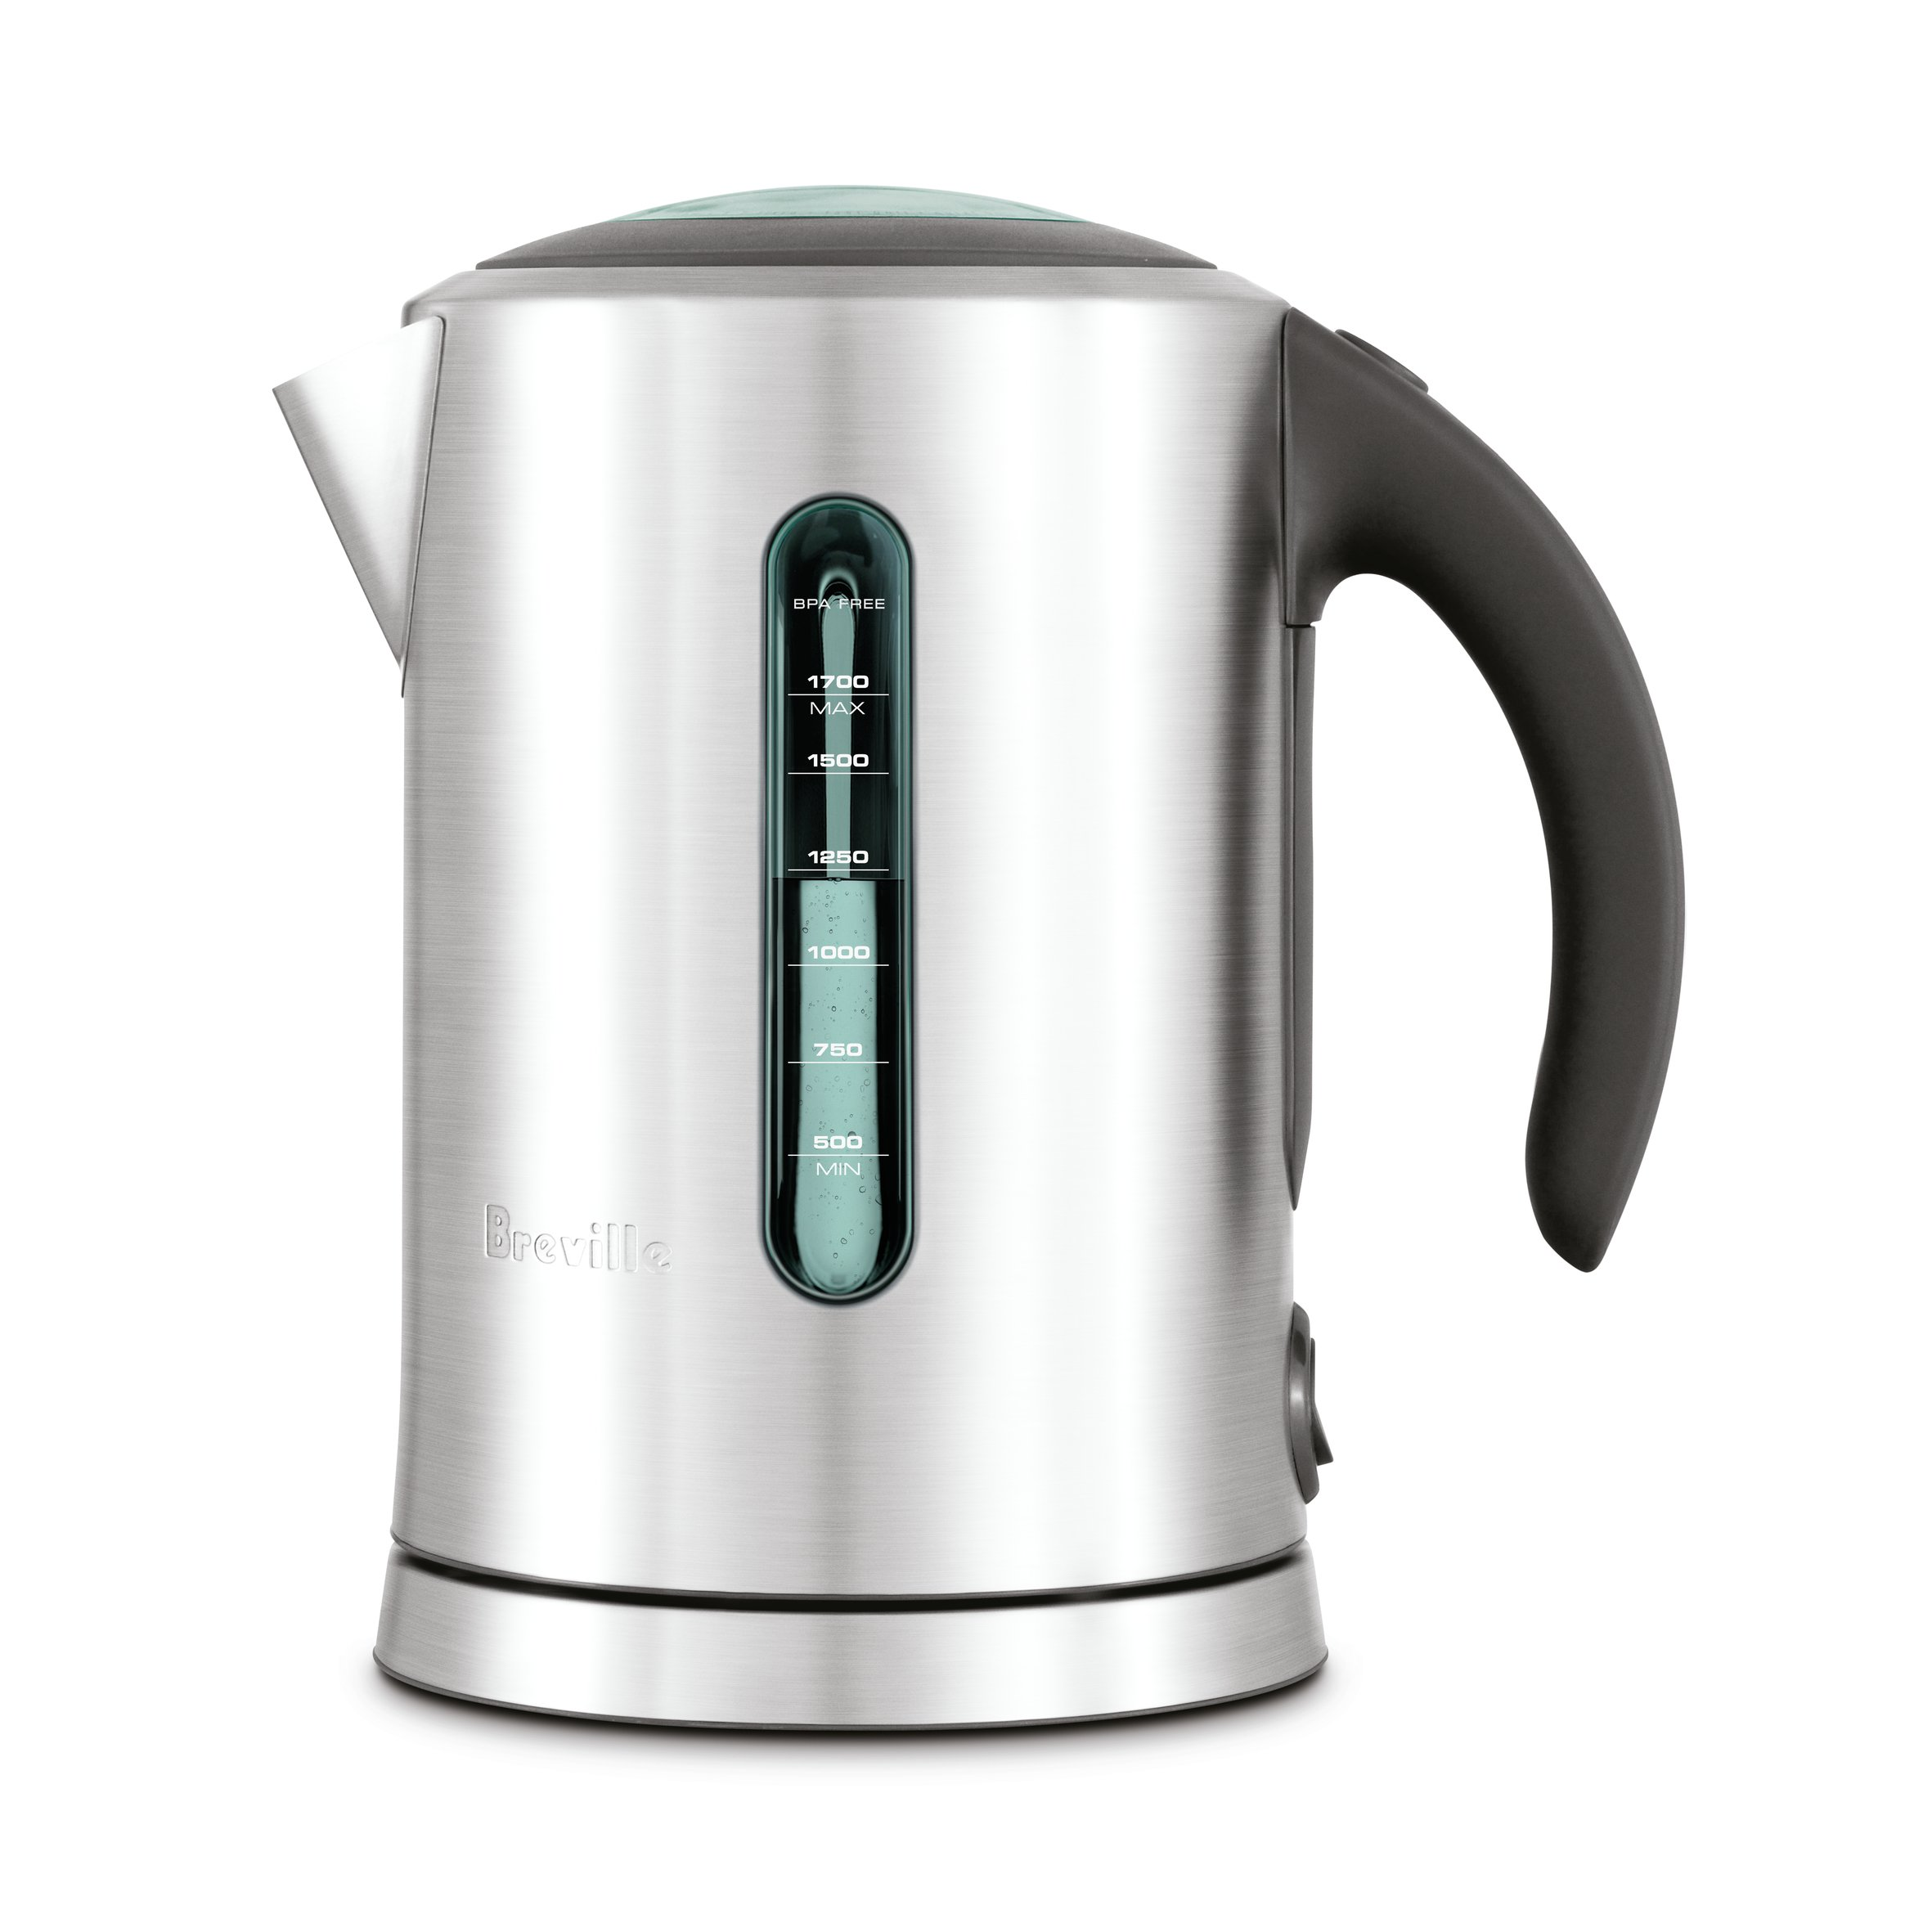 Breville BKE700BSS the Soft Top Pure Electric Tea Kettle, Silver